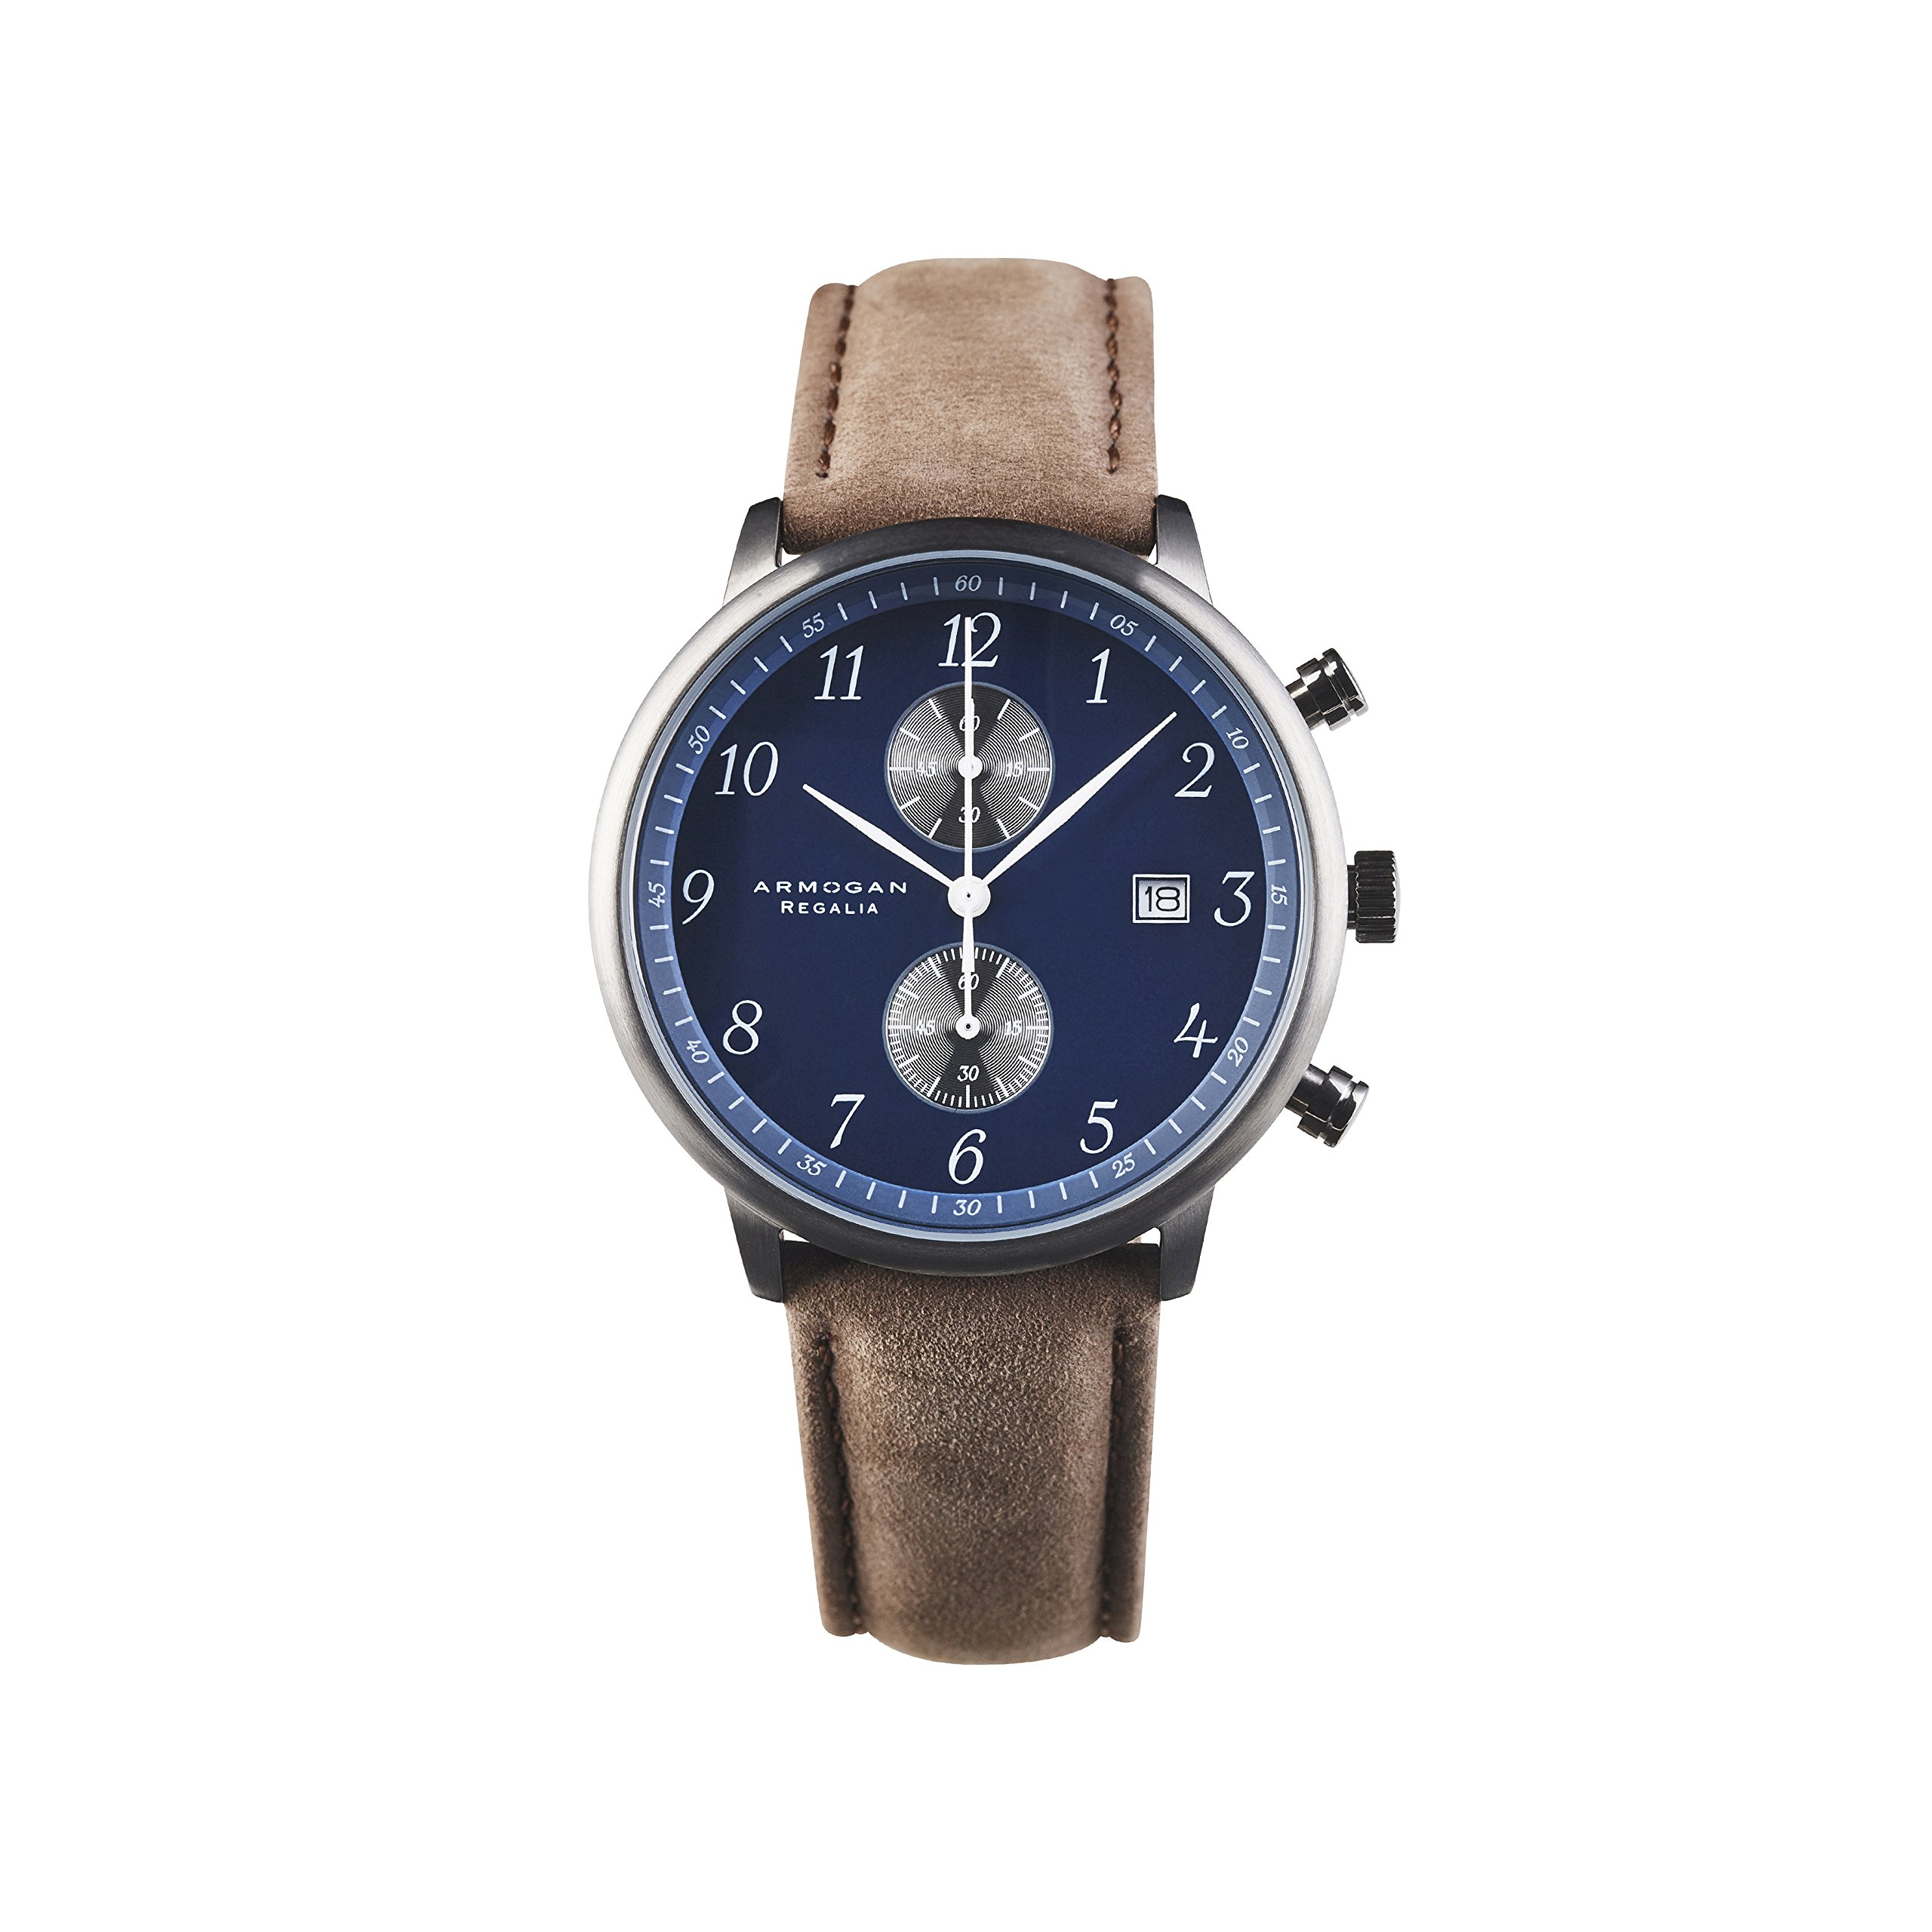 Armogan Regalia - Blue Sapphire S44 - Men's Chronograph Watch Leather Strap by ARMOGAN